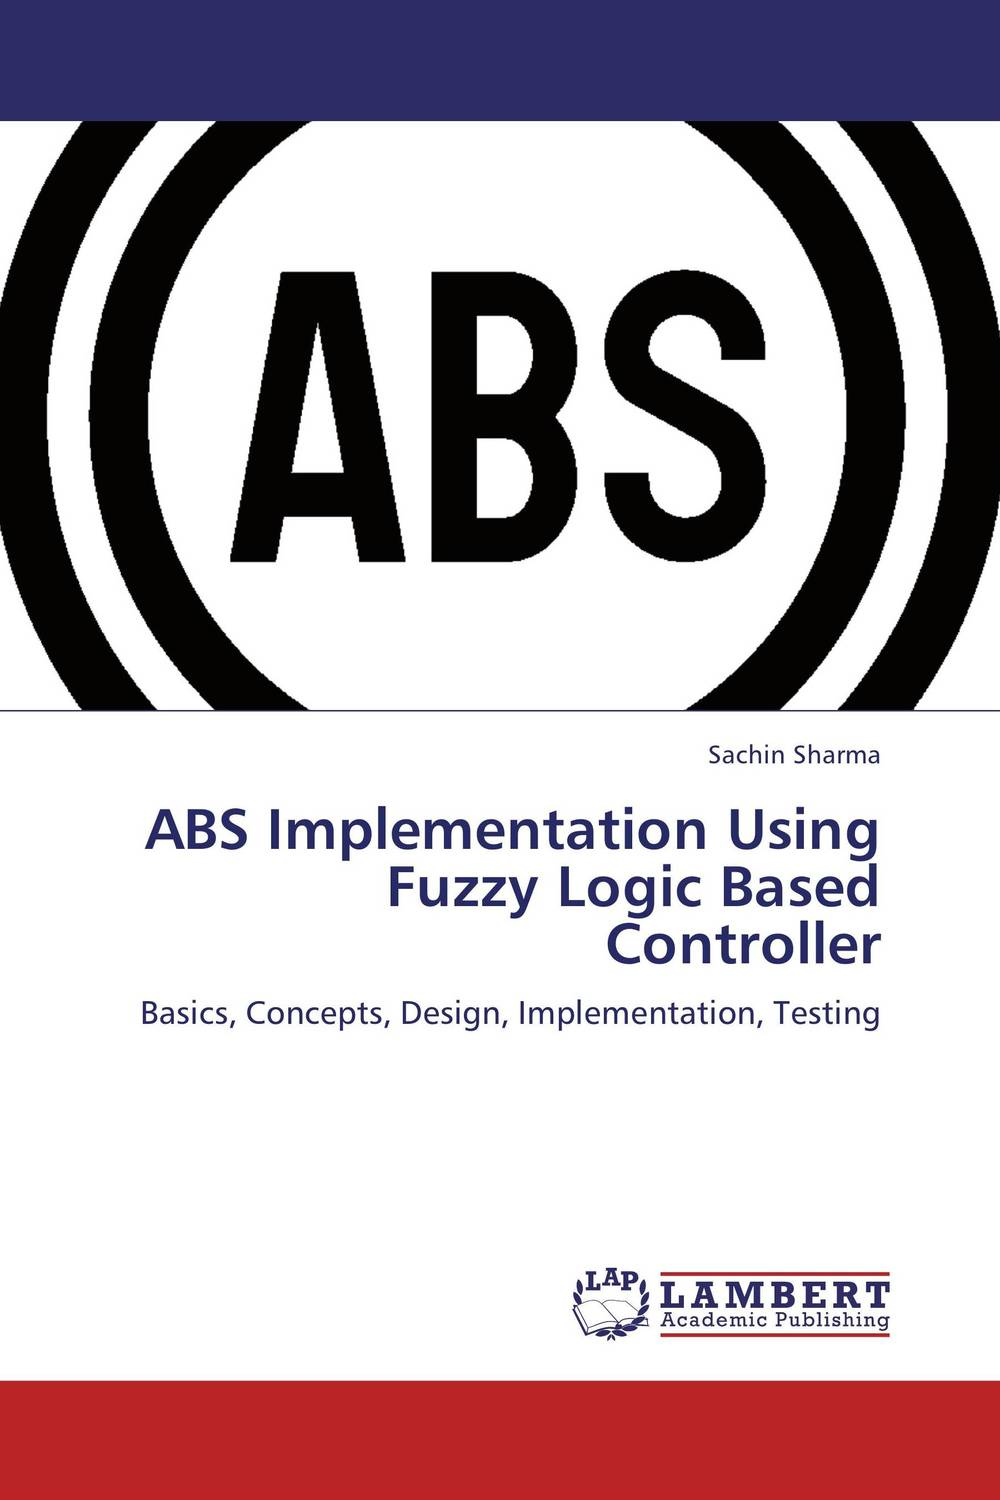 ABS Implementation Using Fuzzy Logic Based Controller fuzzy logic based information retrieval system